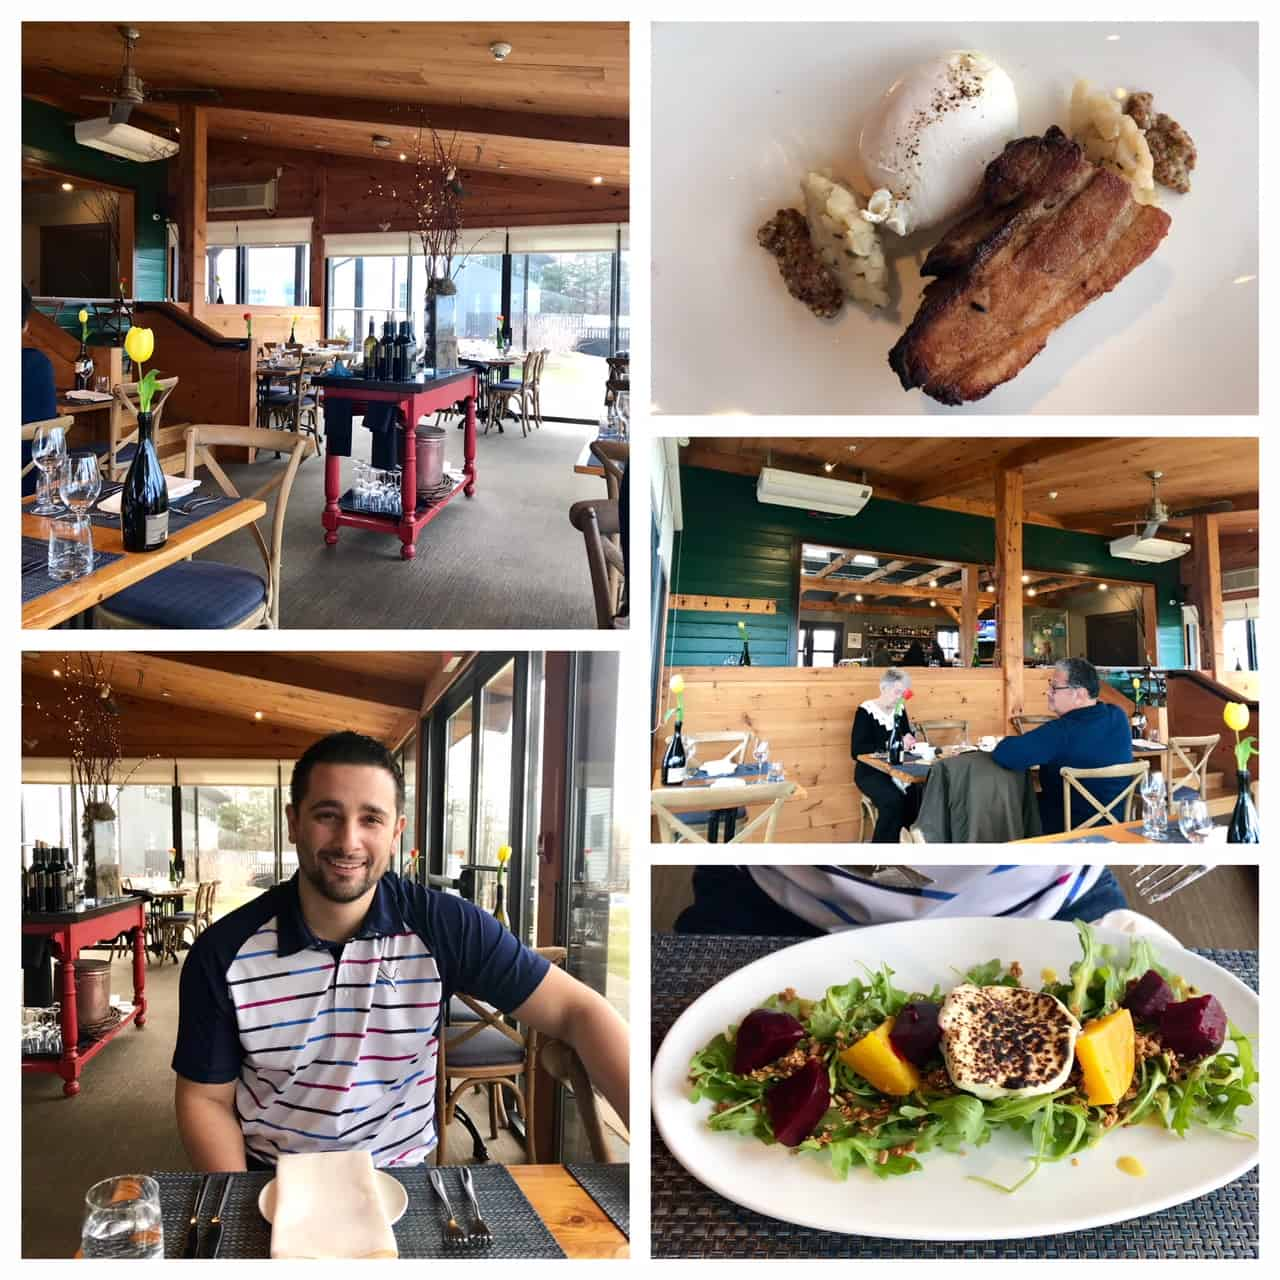 Collage of images from Ravine Vineyard Restaurant